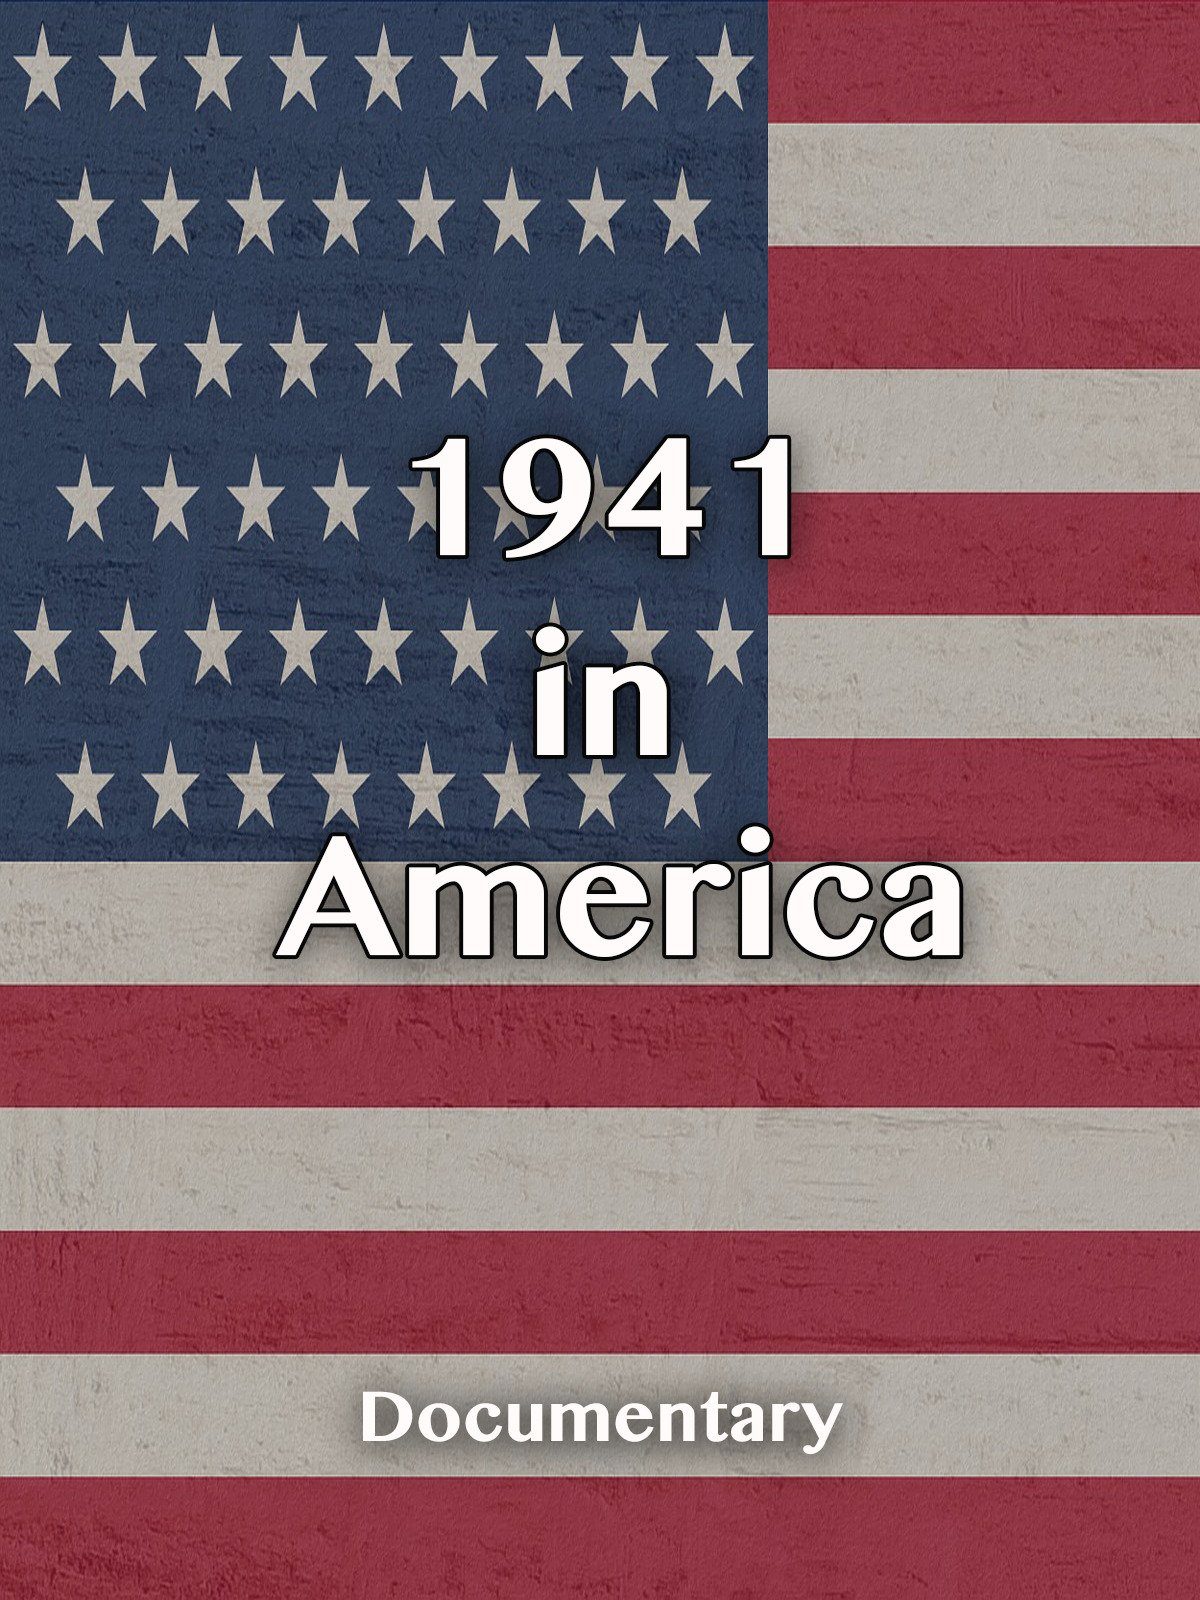 1941 in America Documentary